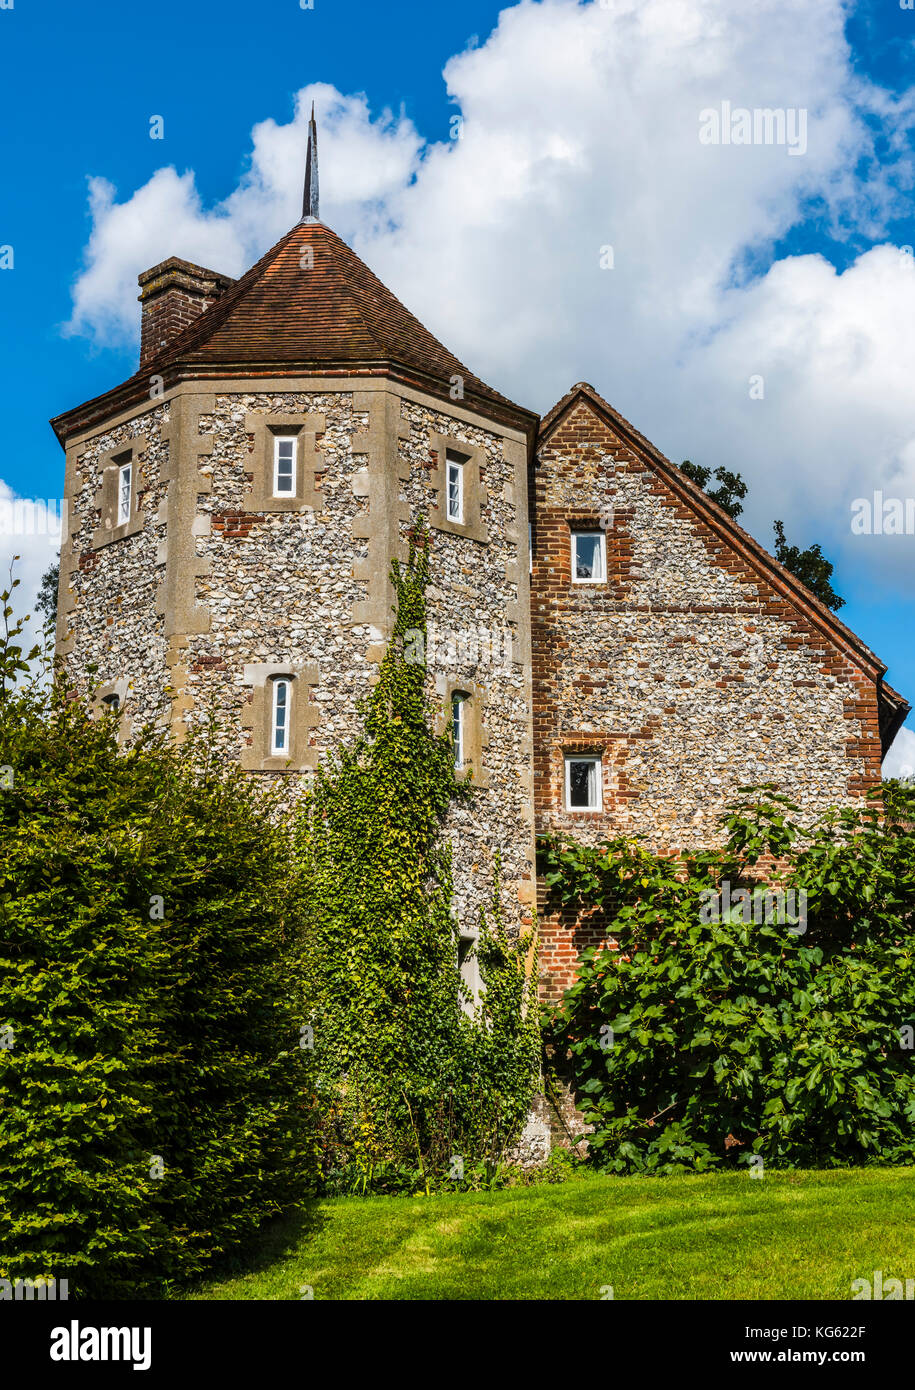 Mansion house and gardens, Greys Court, Oxfordshire, UK - Stock Image